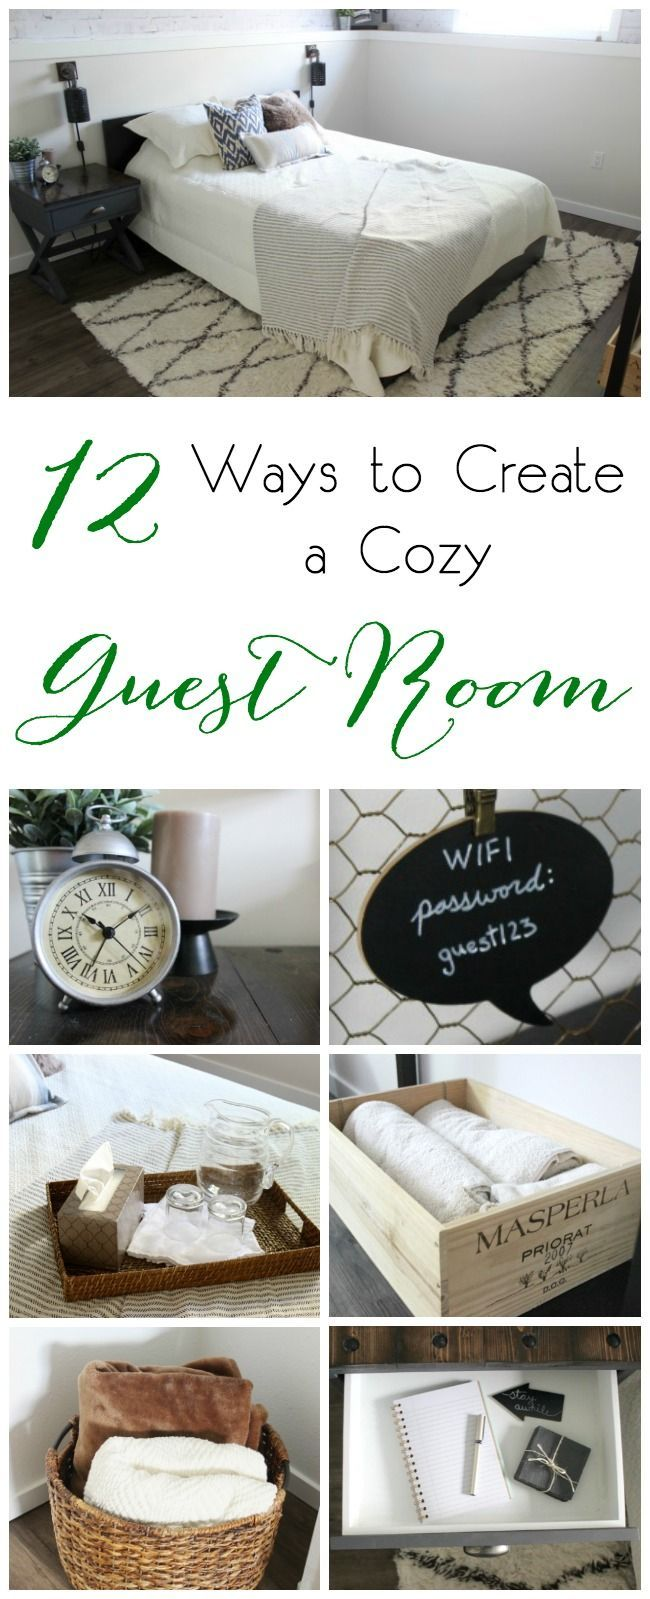 12 Ways to Create a Cozy Guest Room 12 great tips for taking your guest space to...